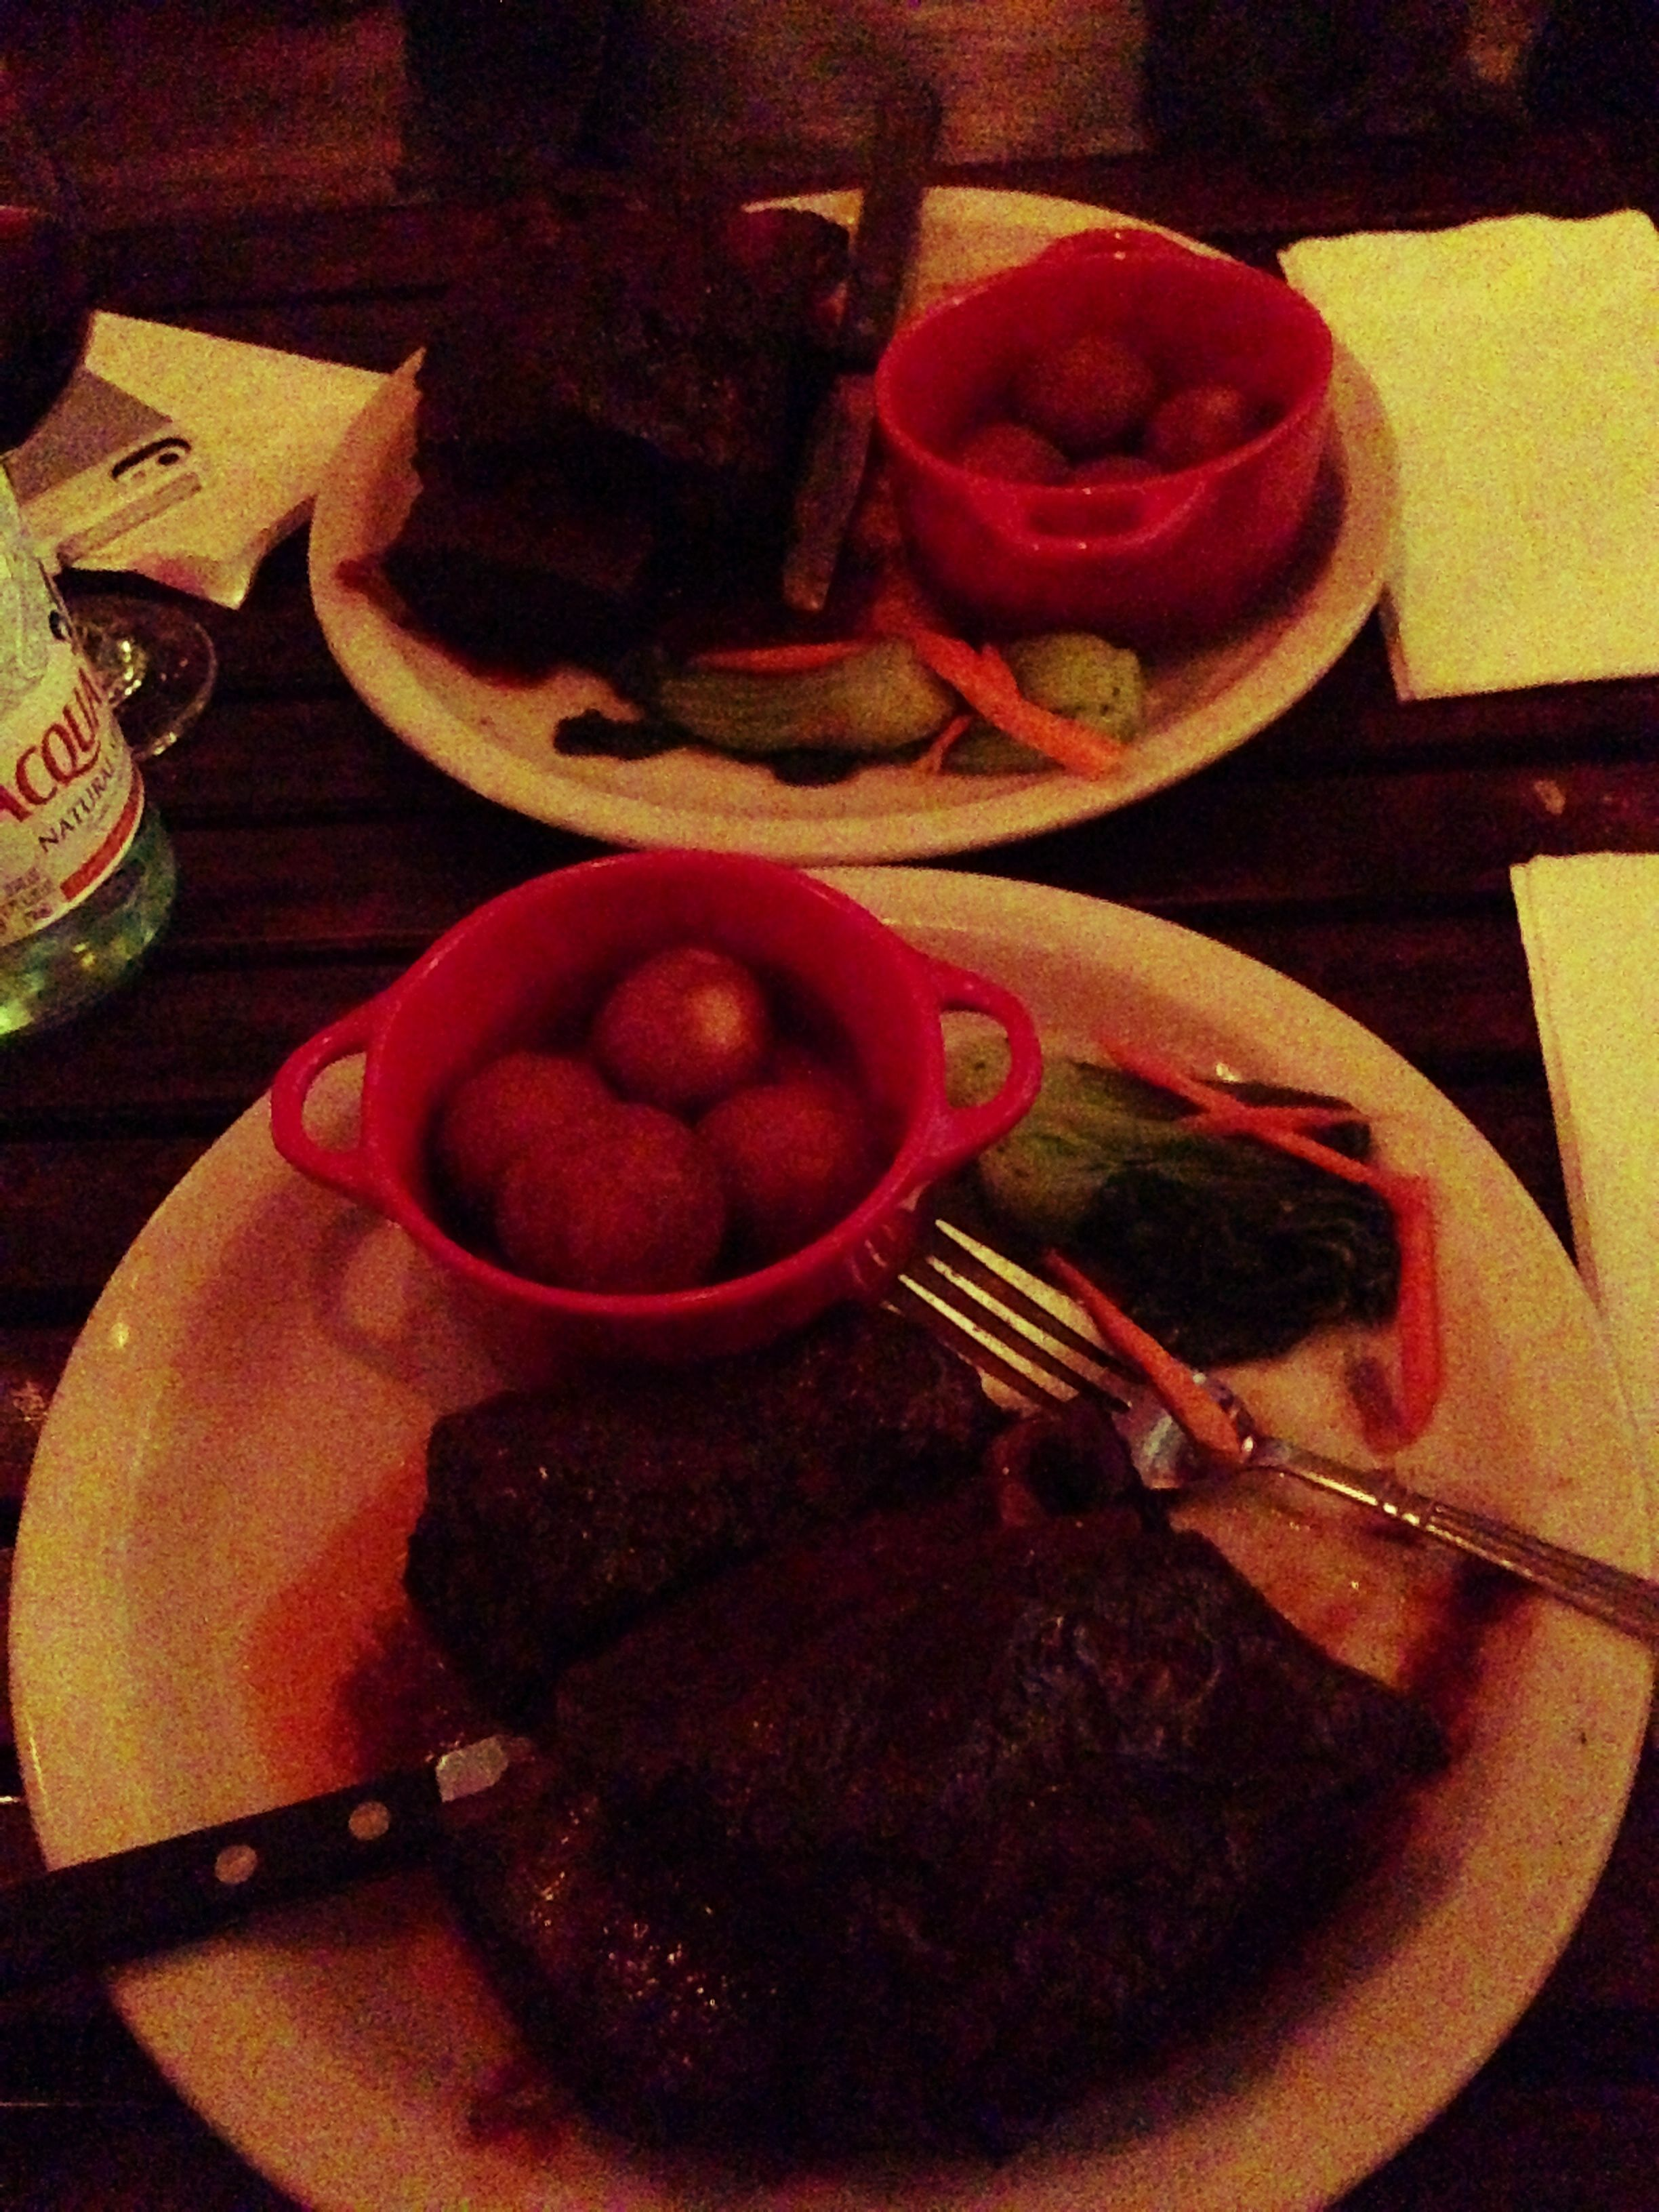 Amazing French Food At Madame Claude Cafe In Jersey City Nj Get The Special If They Have It Short Ribs Food French Food Short Ribs